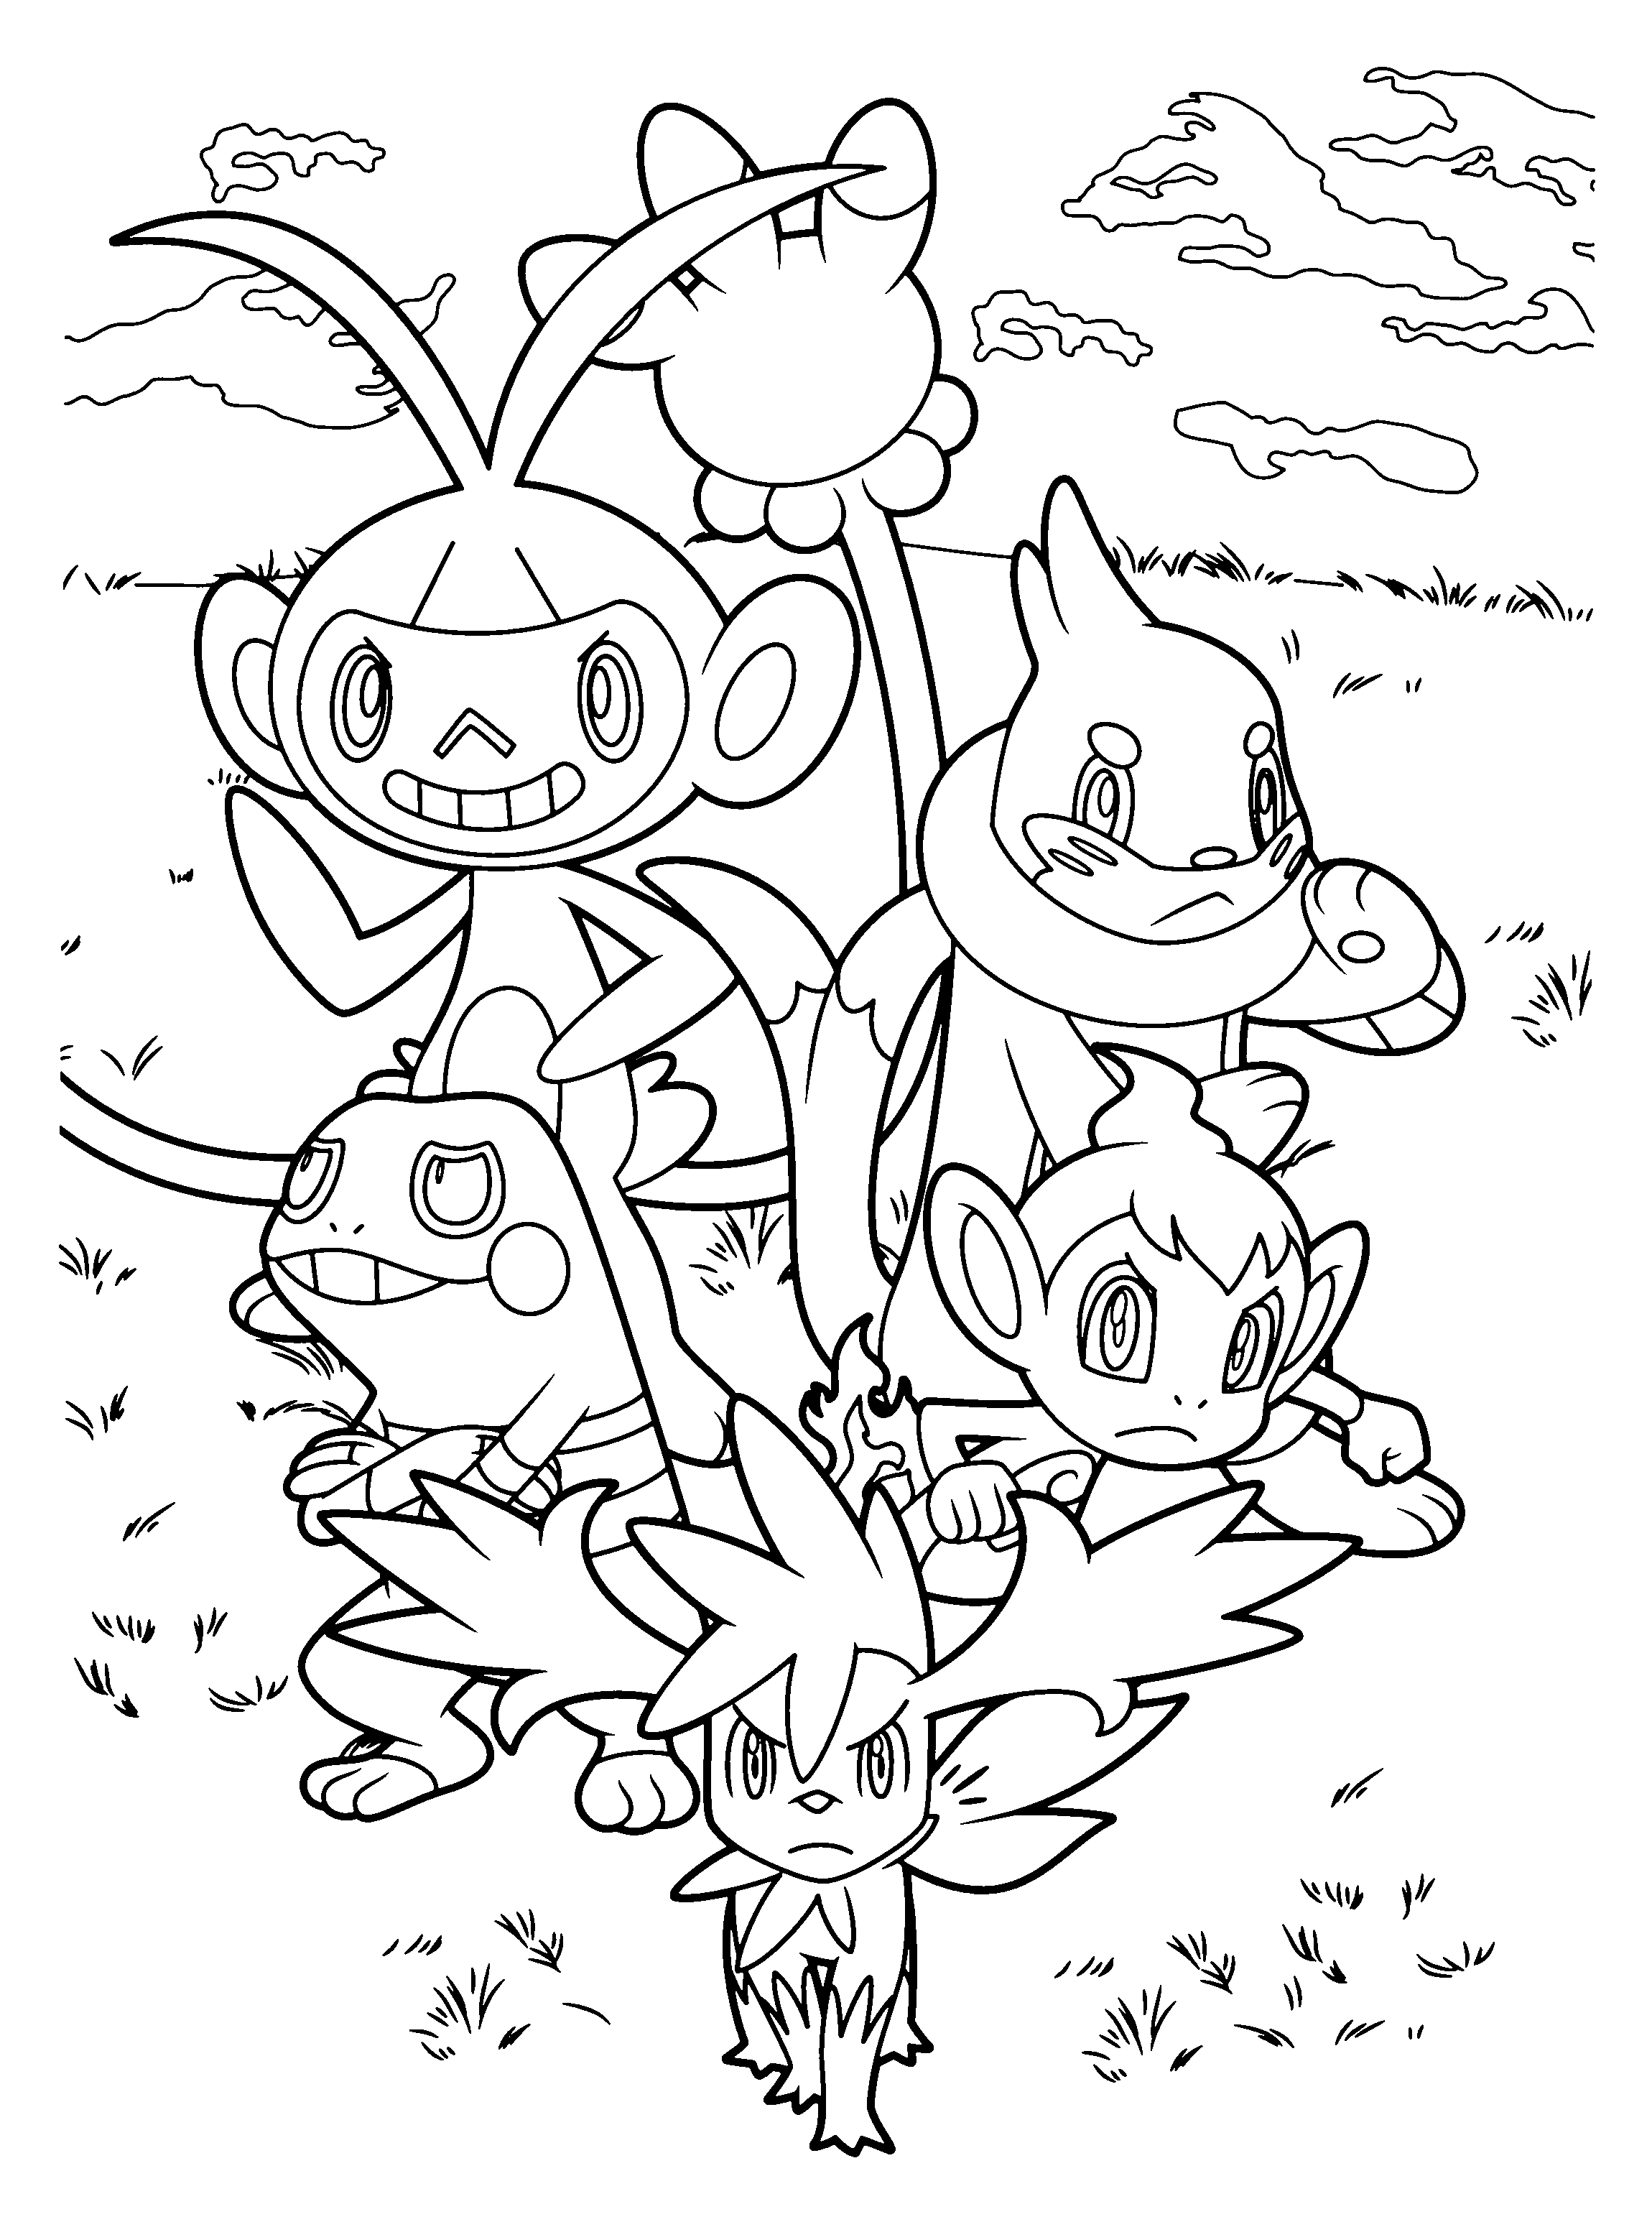 pakemon diamond pearl coloring pages - photo#12